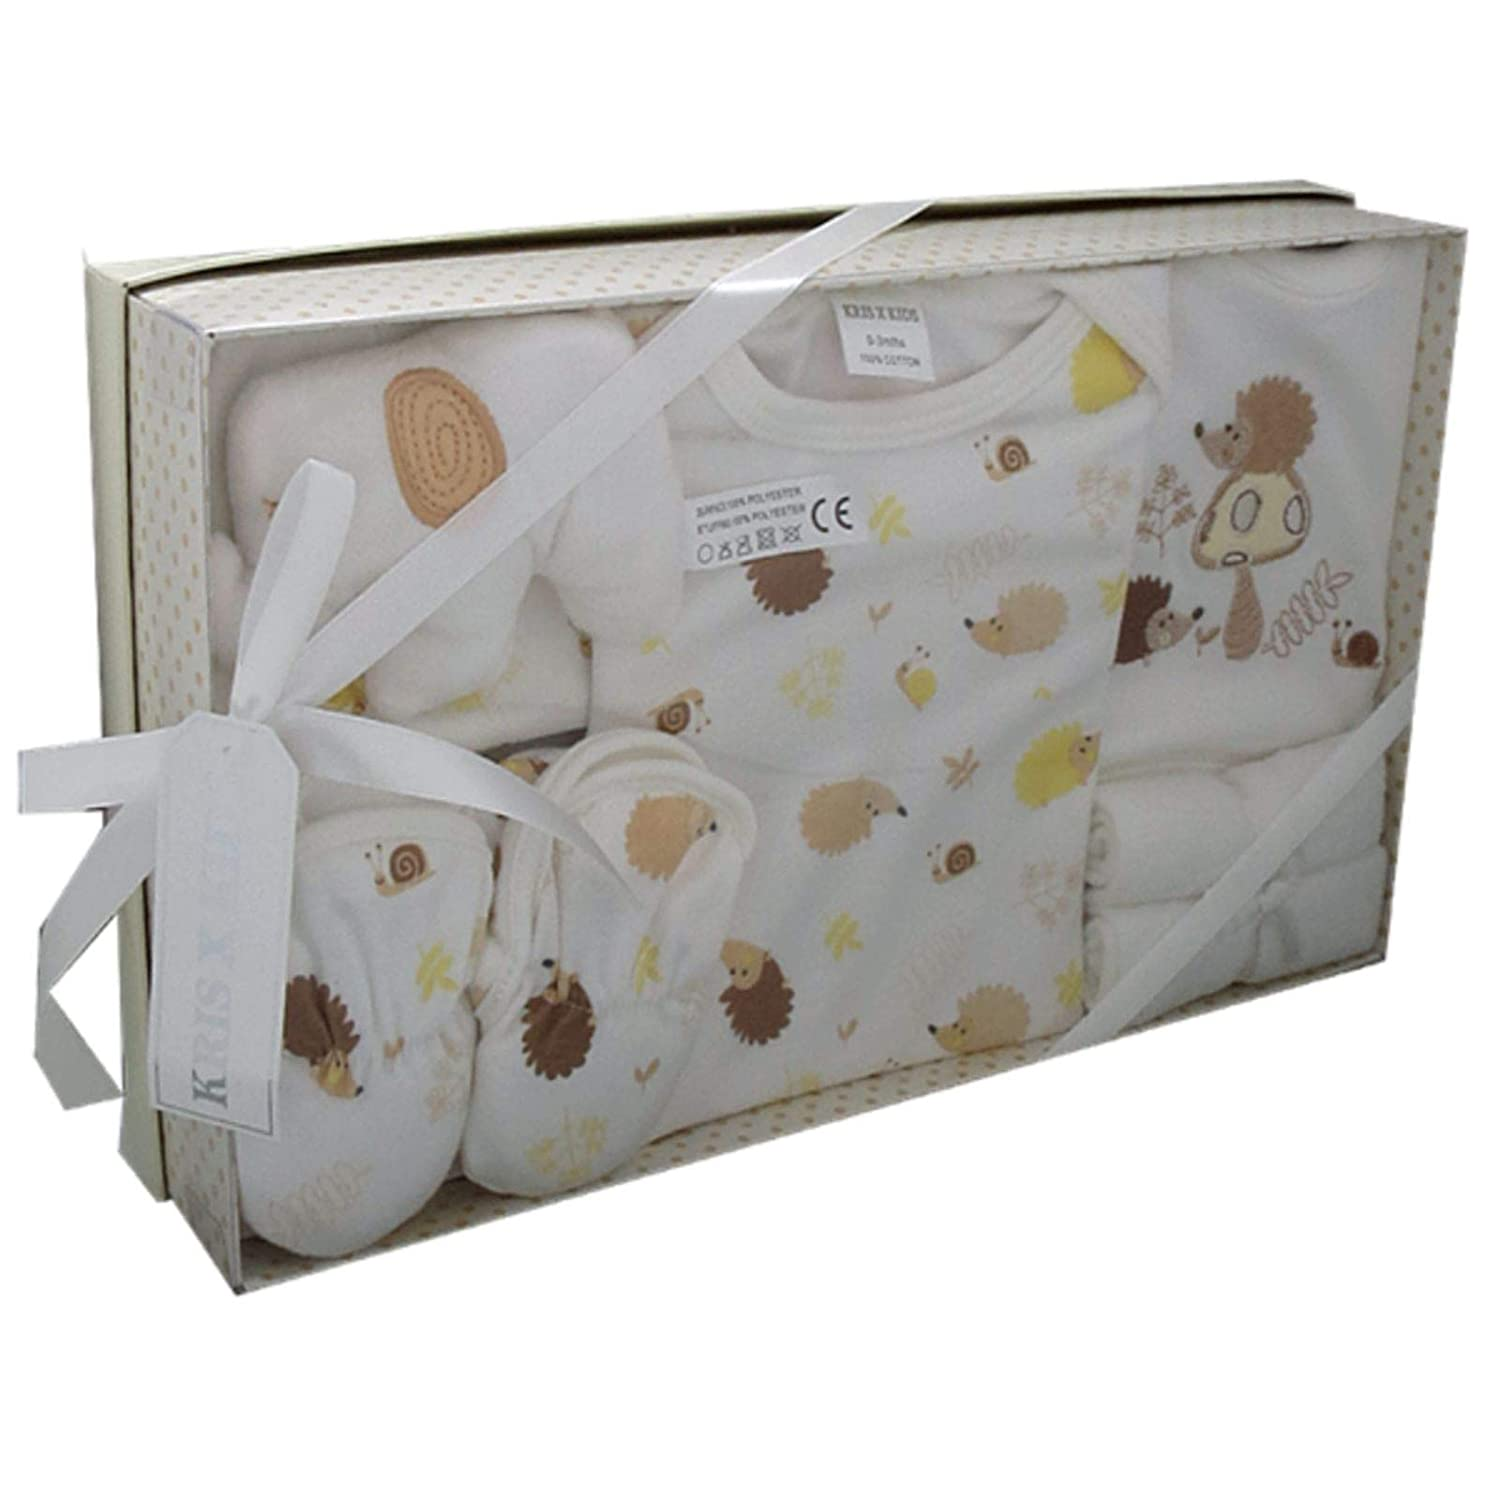 Luxury Boxed Newborn Baby 7 pcs Gift Set 0-3 Months Christmas Available in Blue Pink White Set